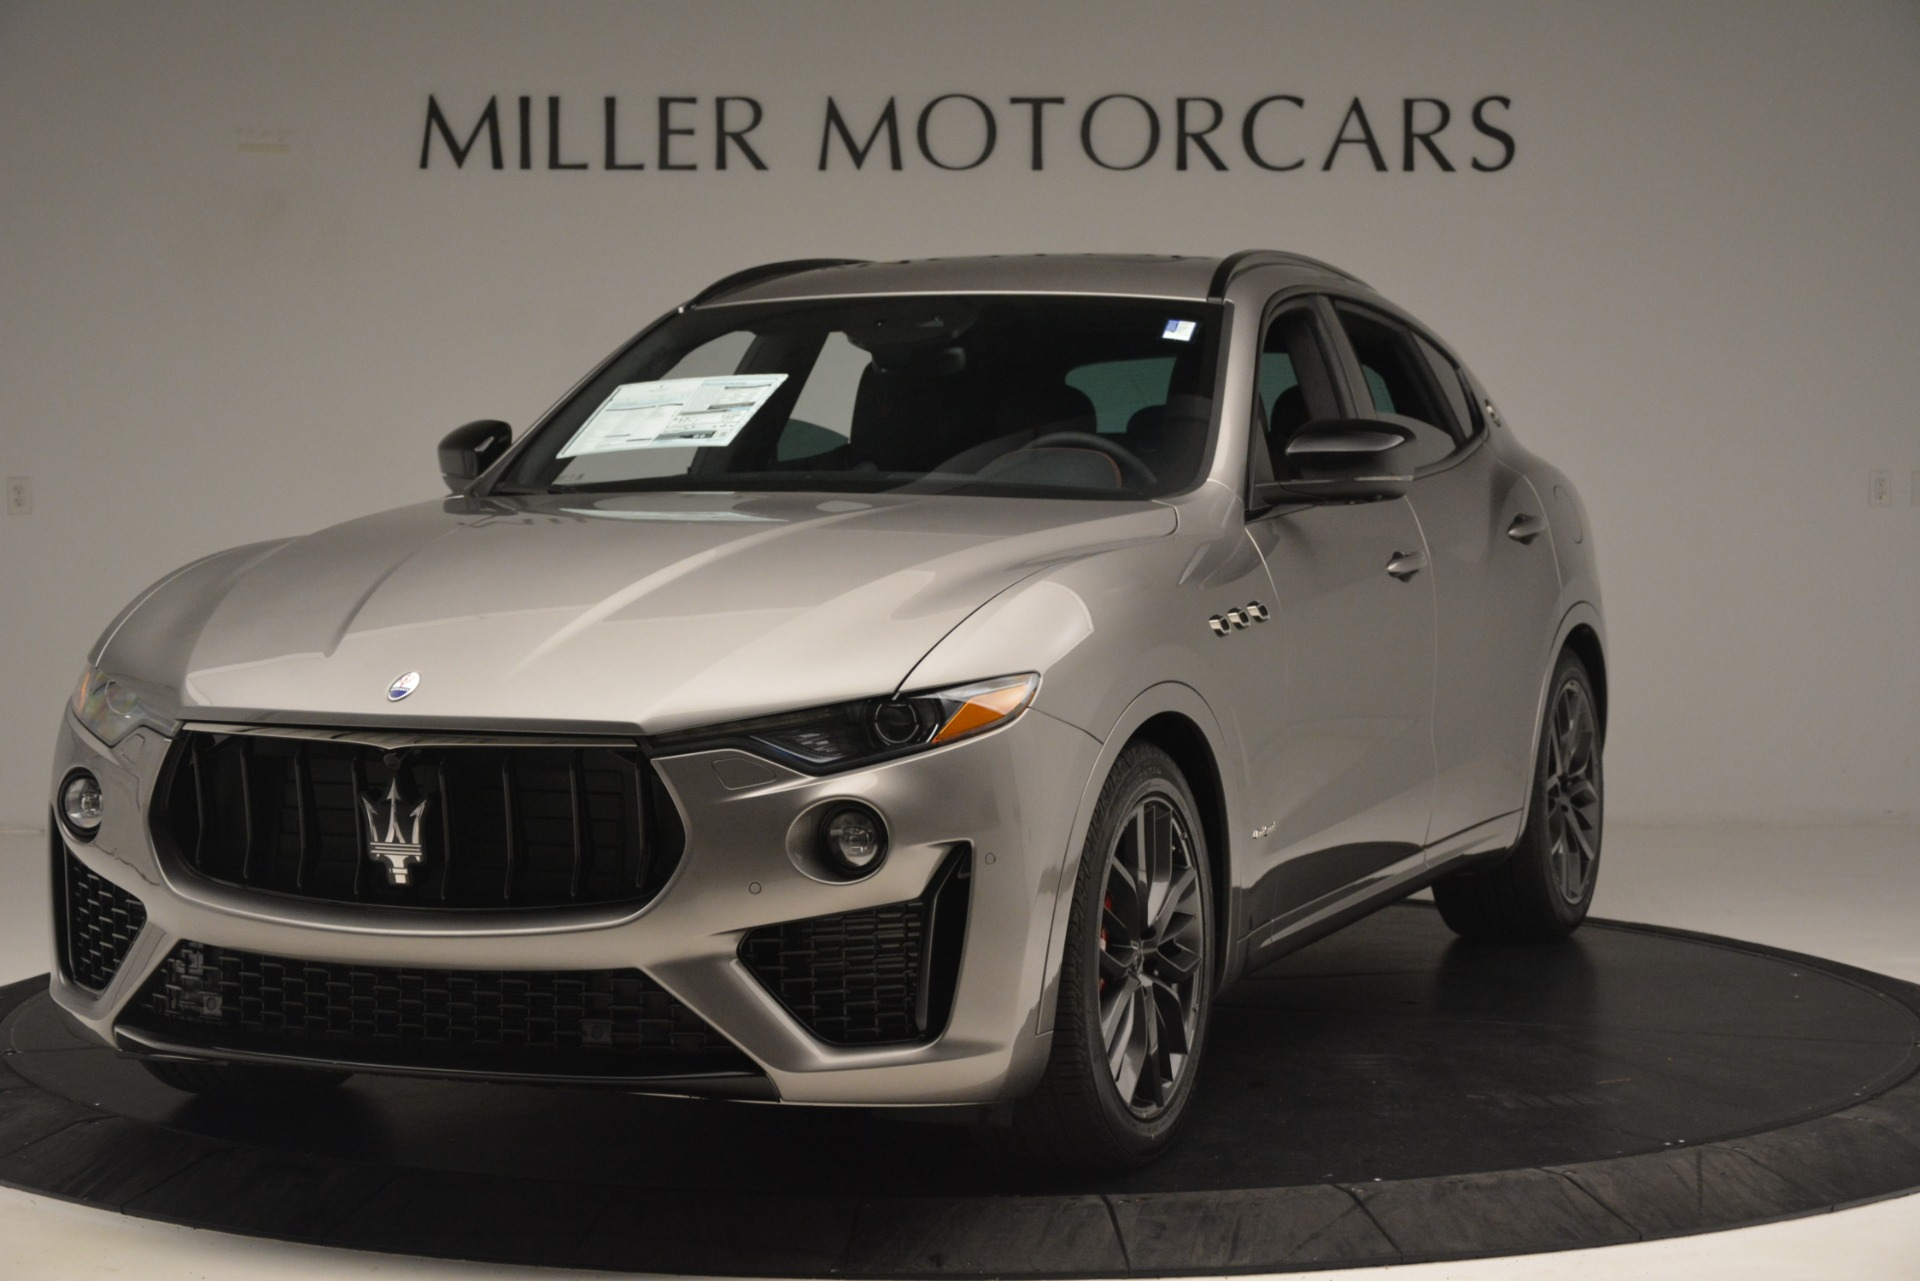 New 2019 Maserati Levante SQ4 GranSport Nerissimo for sale Sold at McLaren Greenwich in Greenwich CT 06830 1